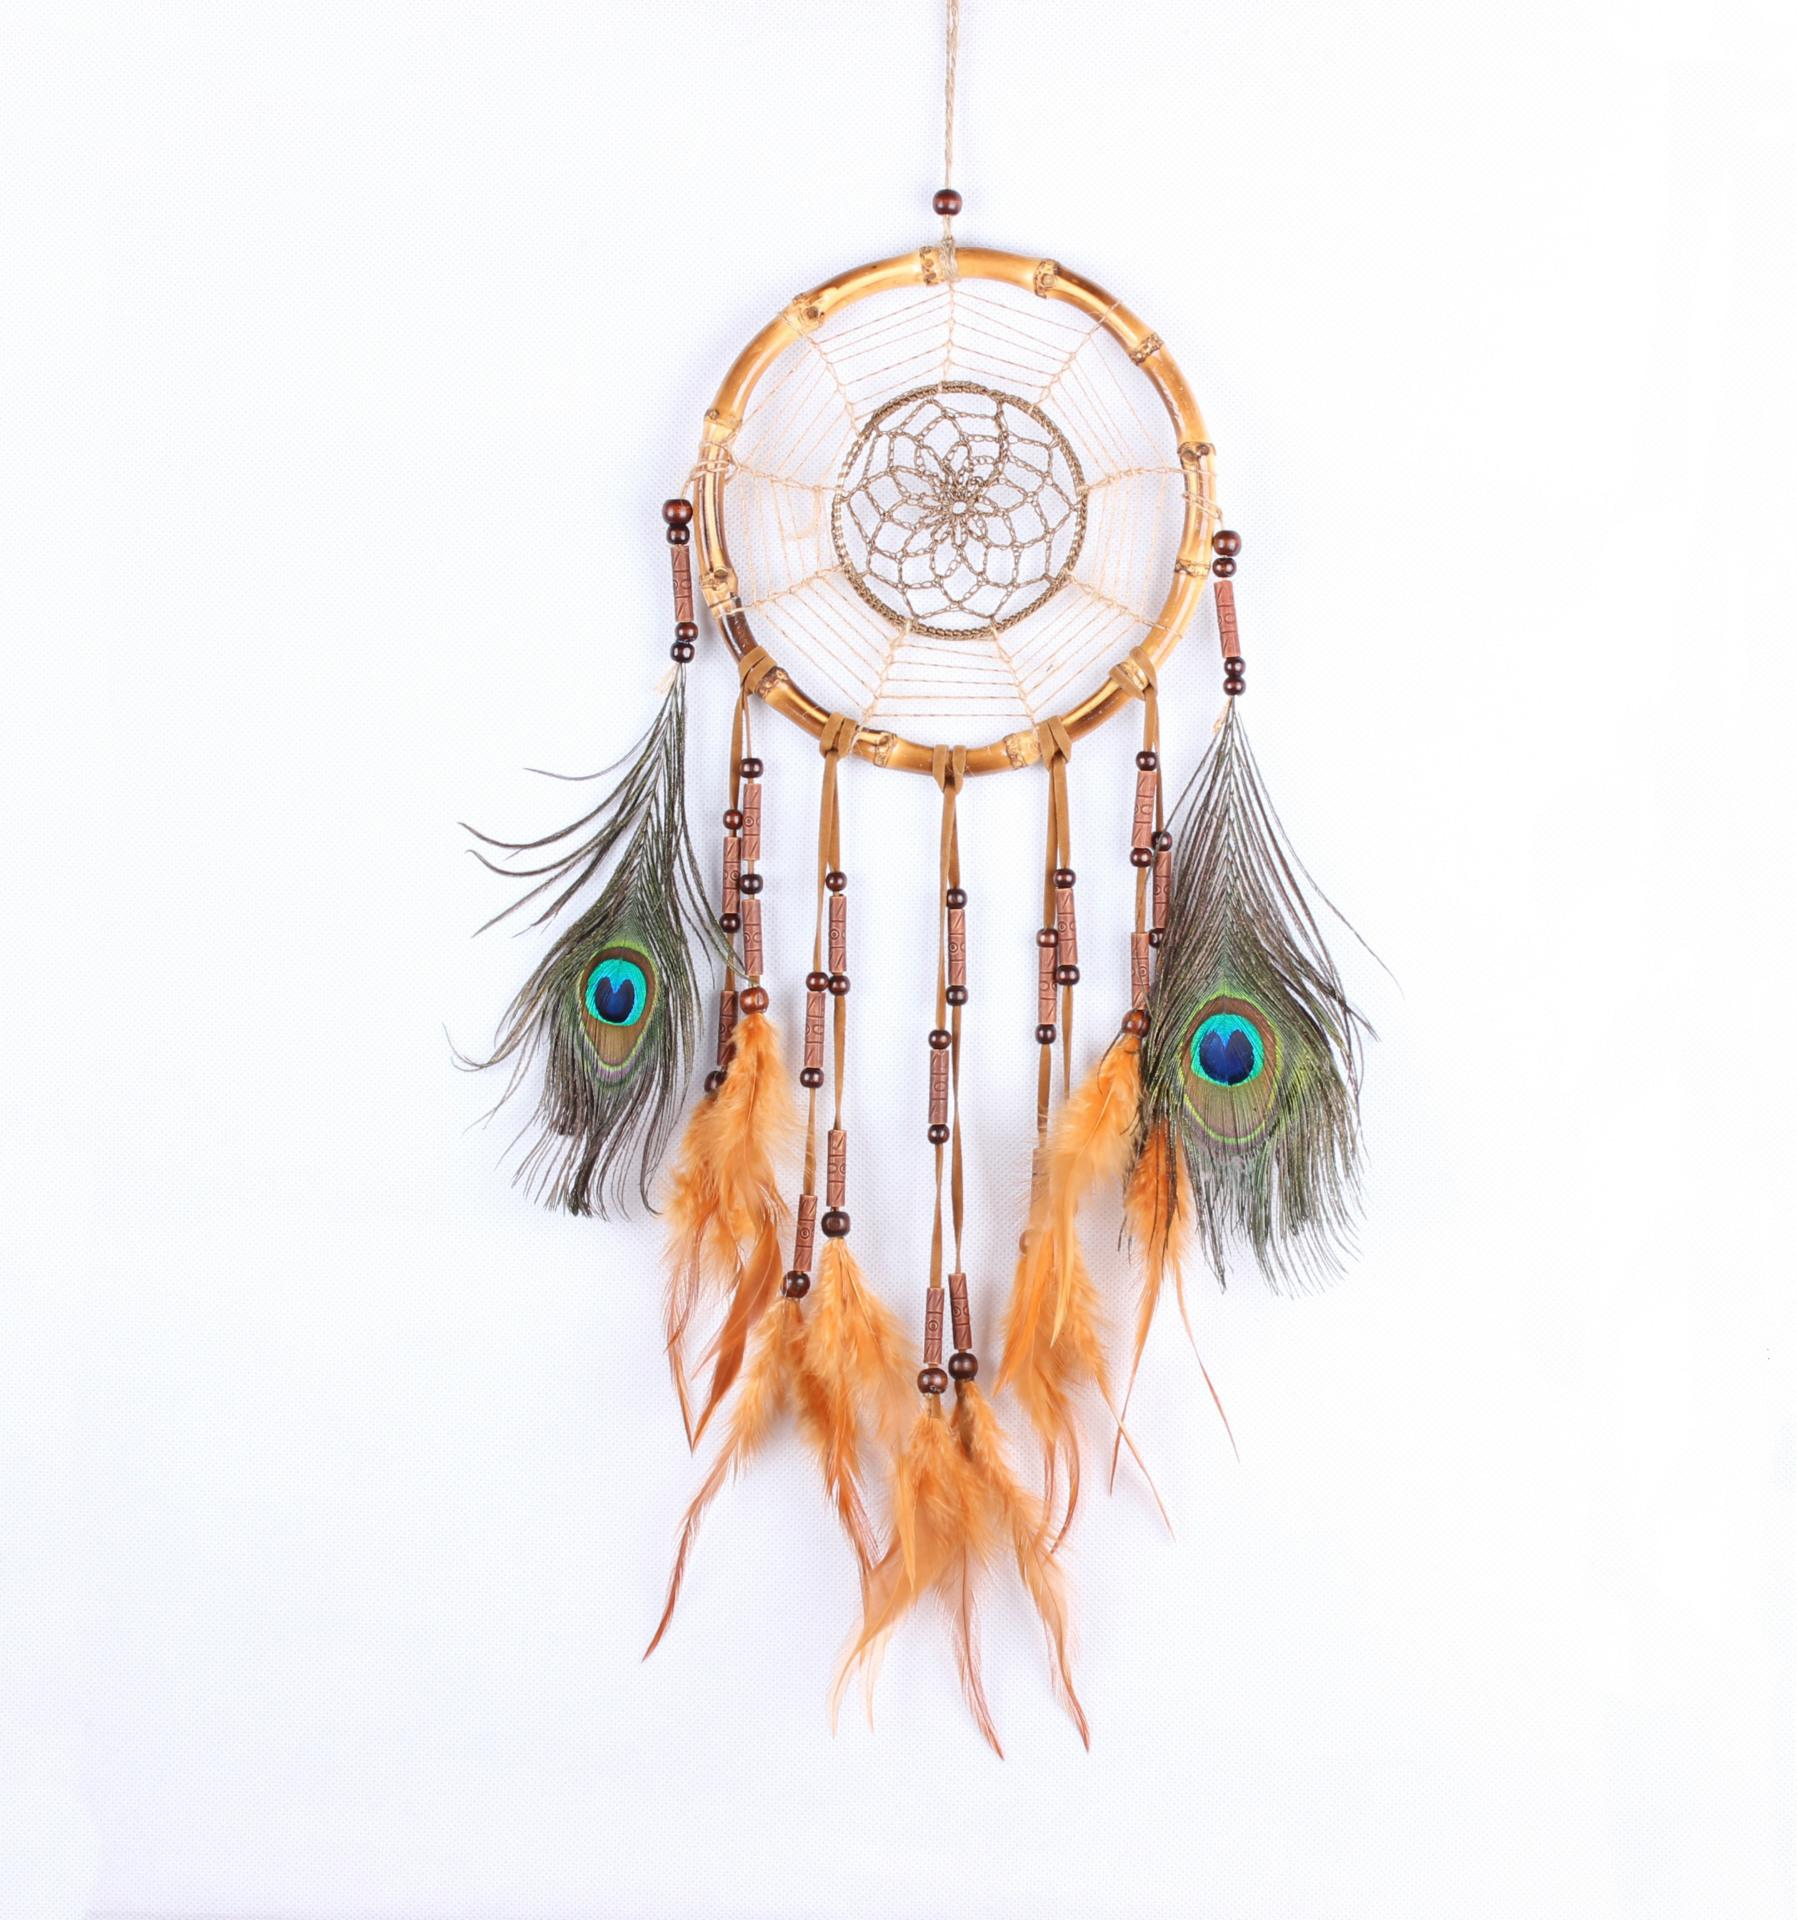 Ornaments Creative Feathers Hand-Woven Led Lights Dream Catchers Night Lights Wind Chimes Gift Pendants Home Accessories